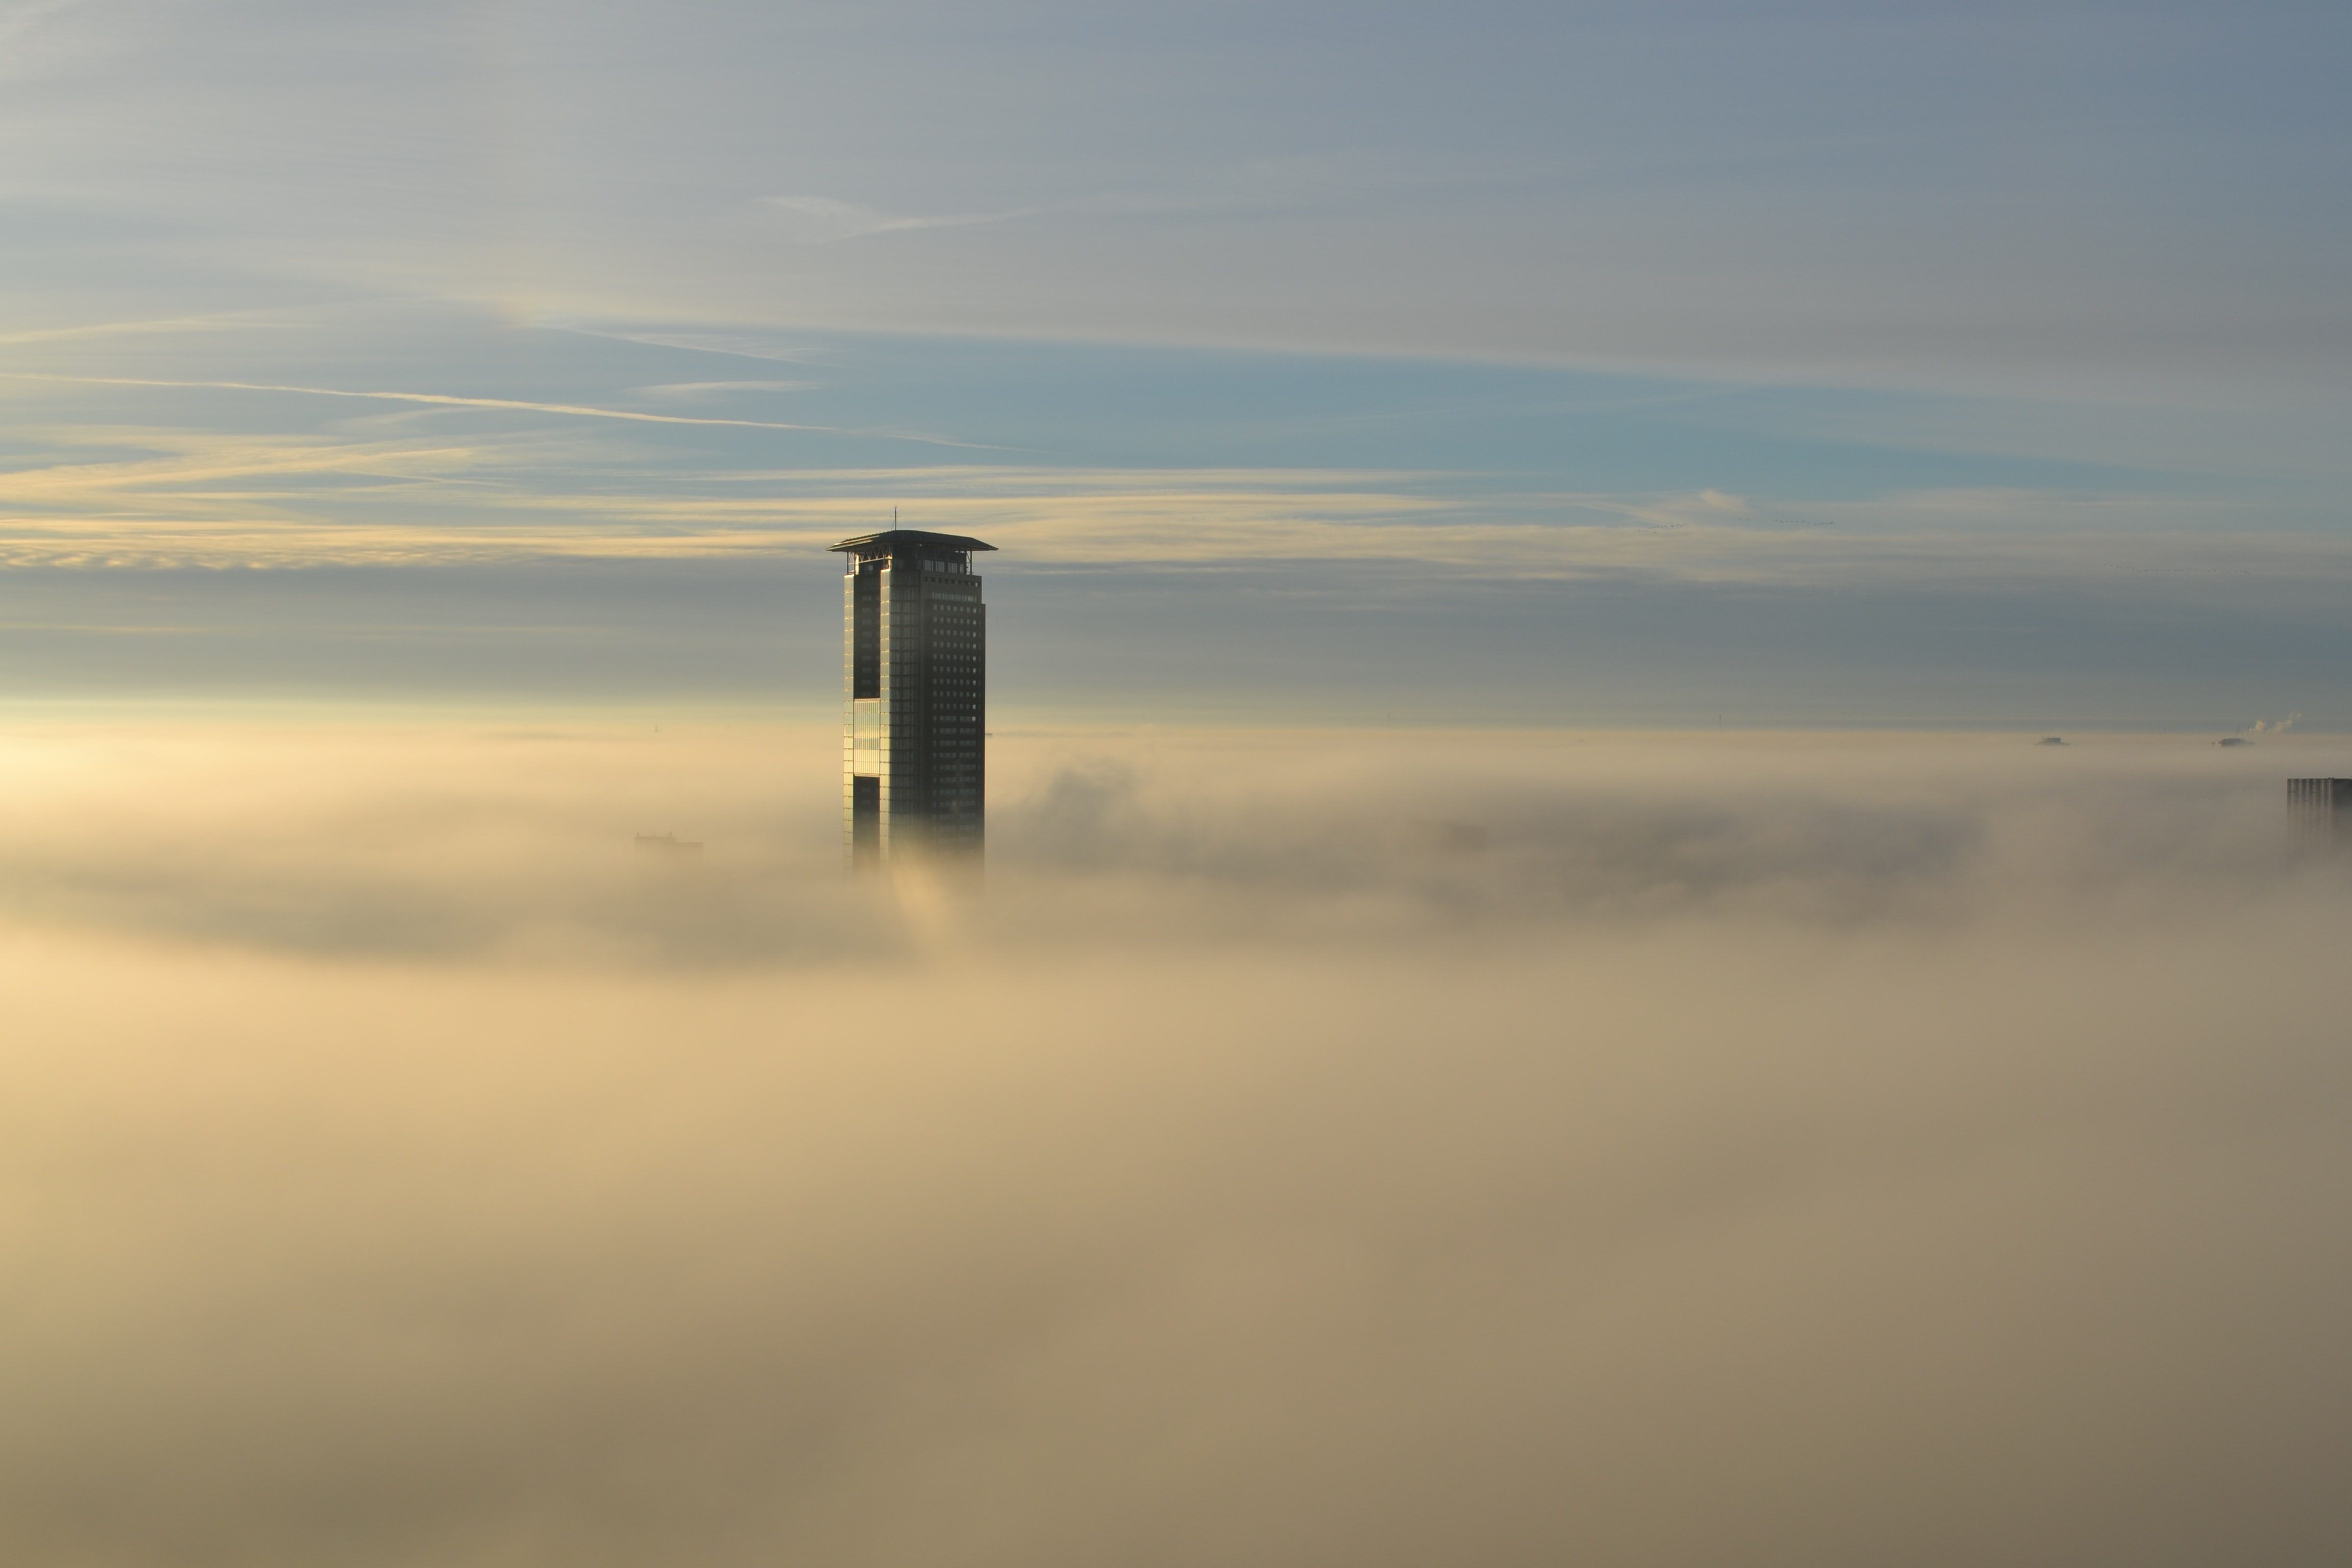 City skyscraper peeks through the clouds on a sunny day